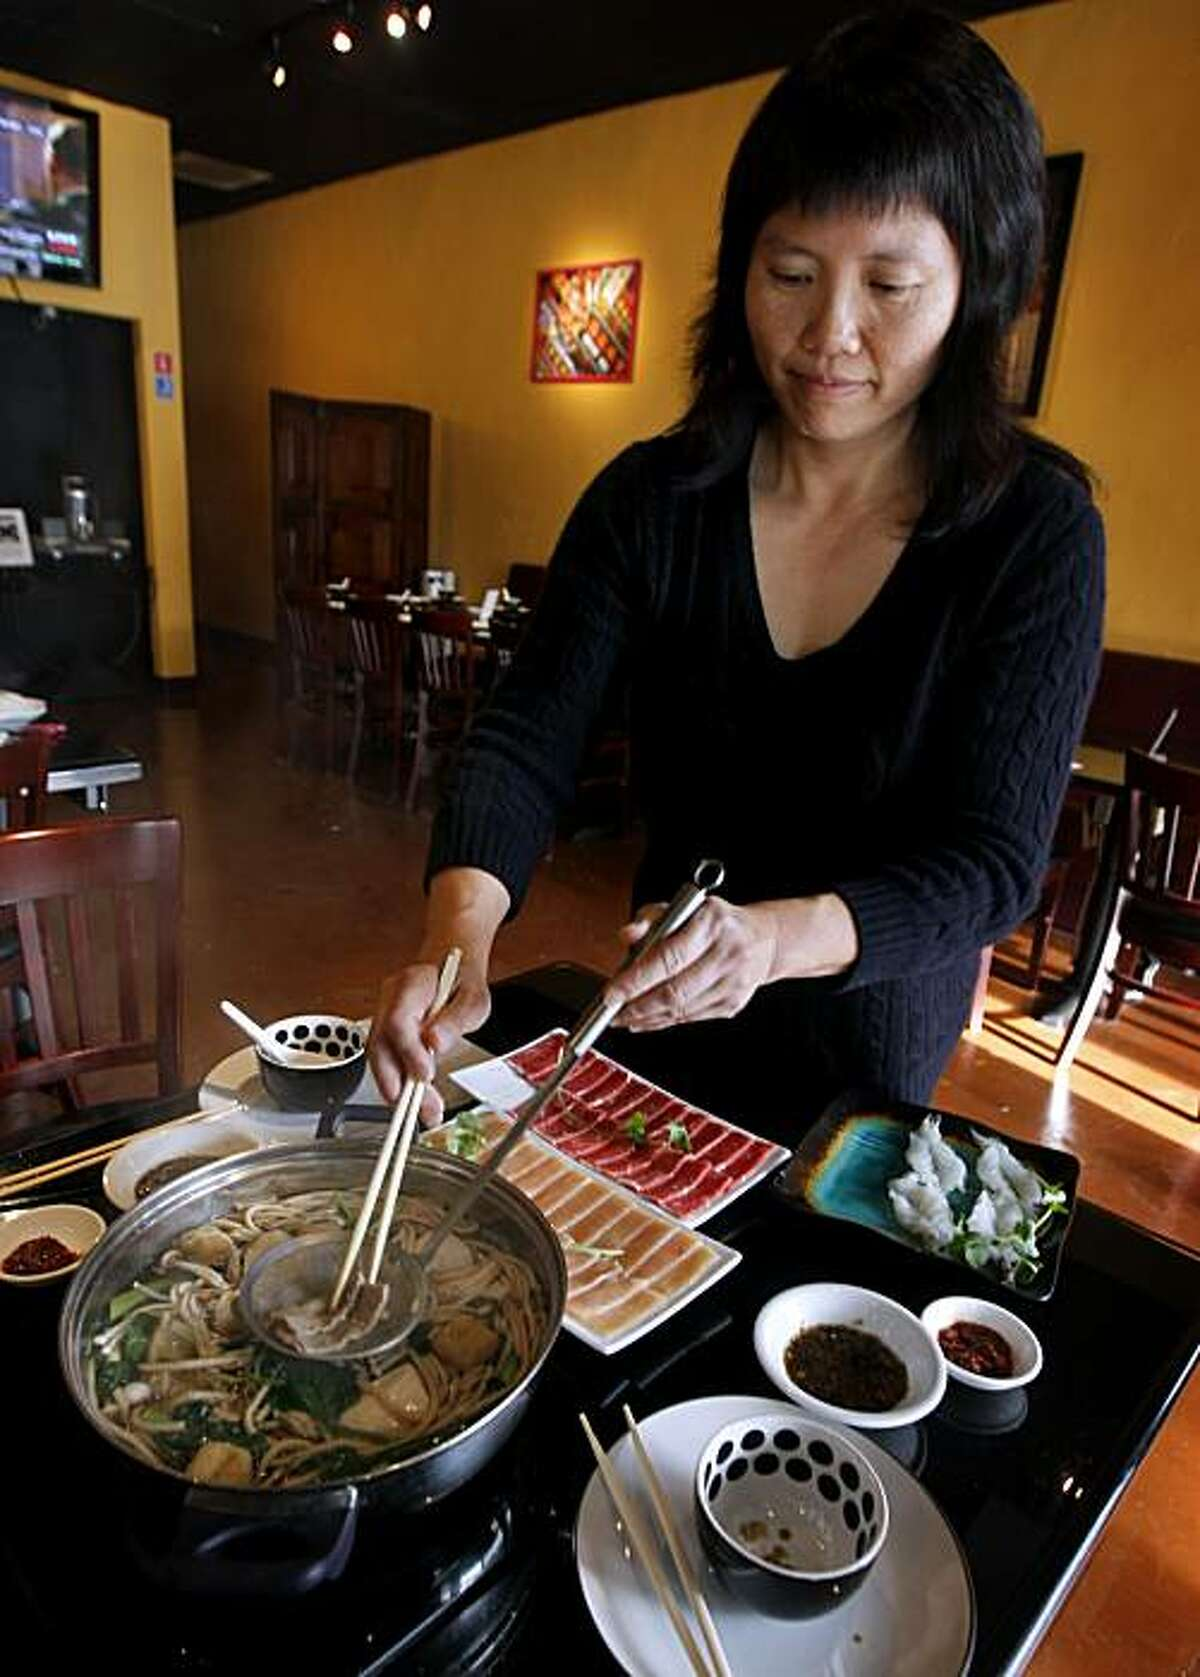 Necole Chu helps a diner cook chicken, beef and mushrooms in a hot pot of broth at Ray's Hot Pot restaurant in San Rafael, Calif., on Wednesday, Dec. 9, 2009.